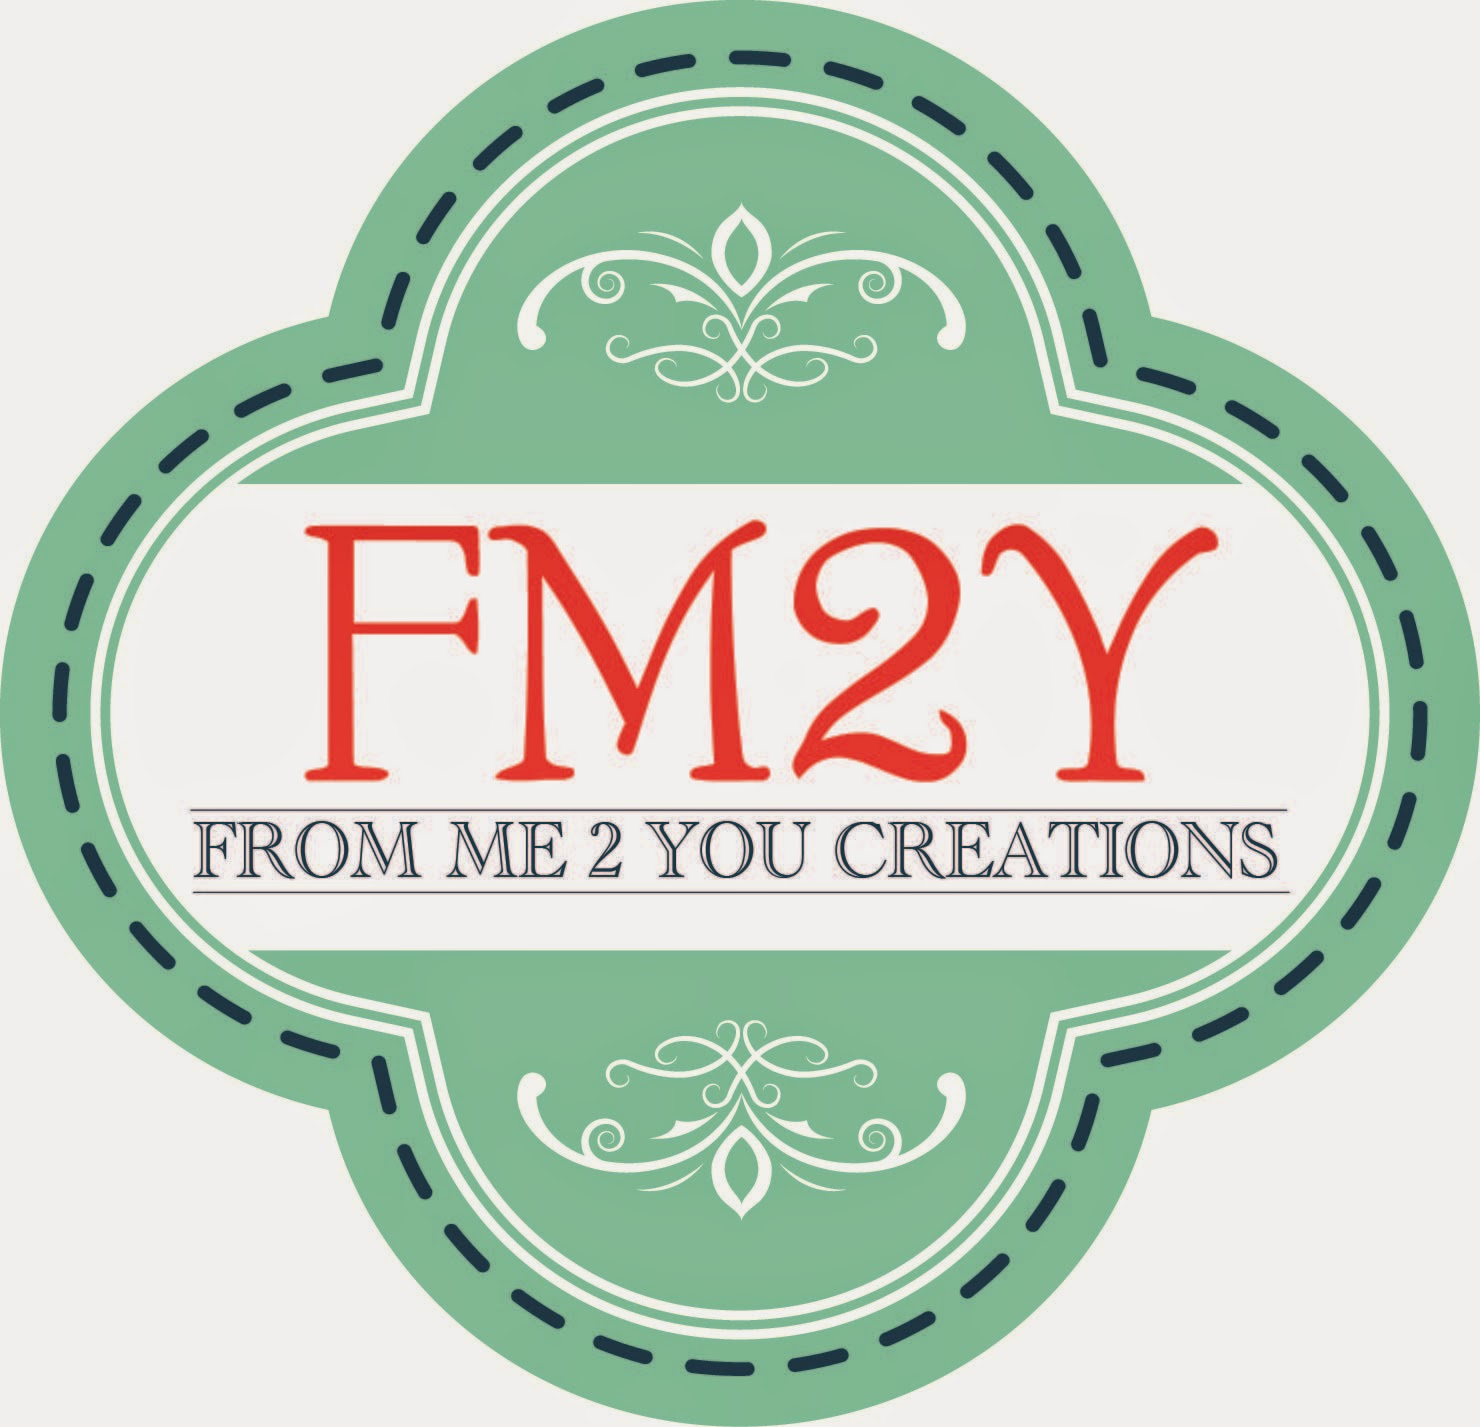 #FM2YCreations #Letspartycreations